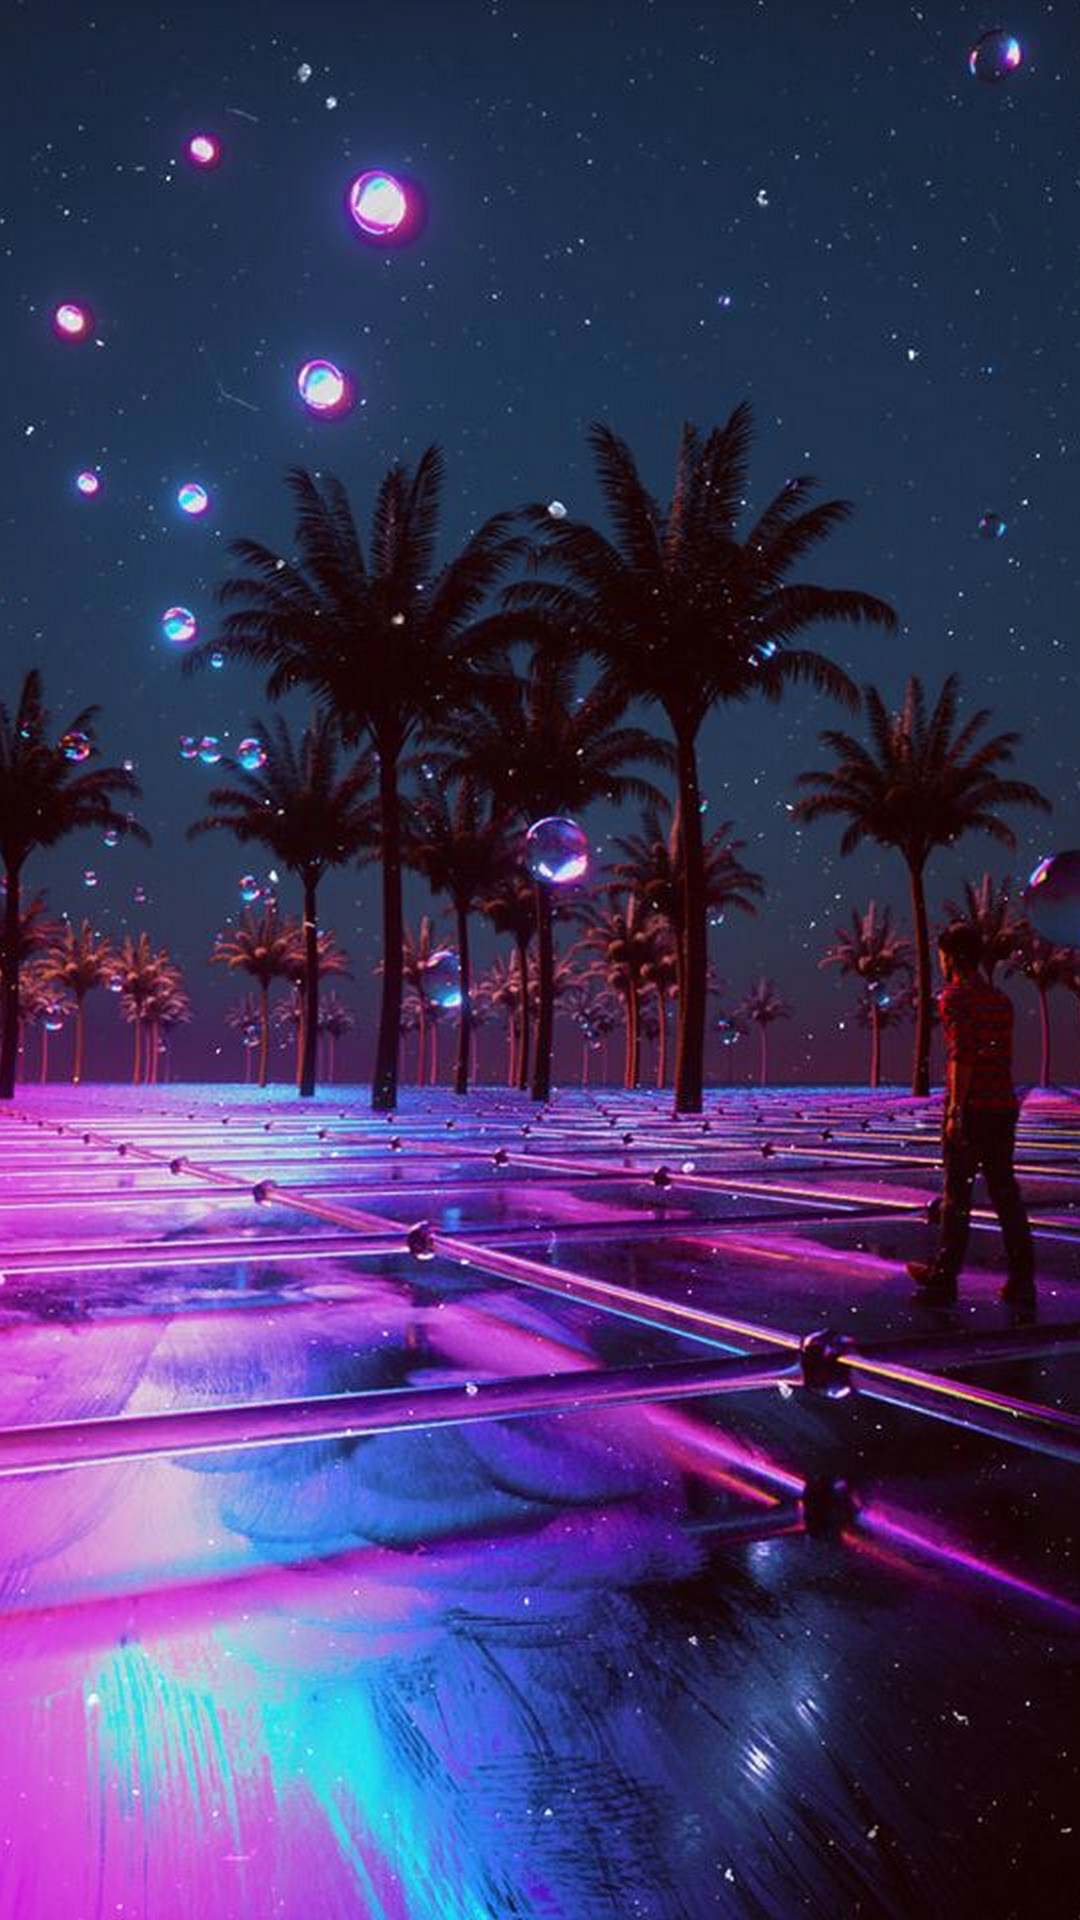 Heaven | Vaporwave wallpaper, Neon aesthetic, Aesthetic ...